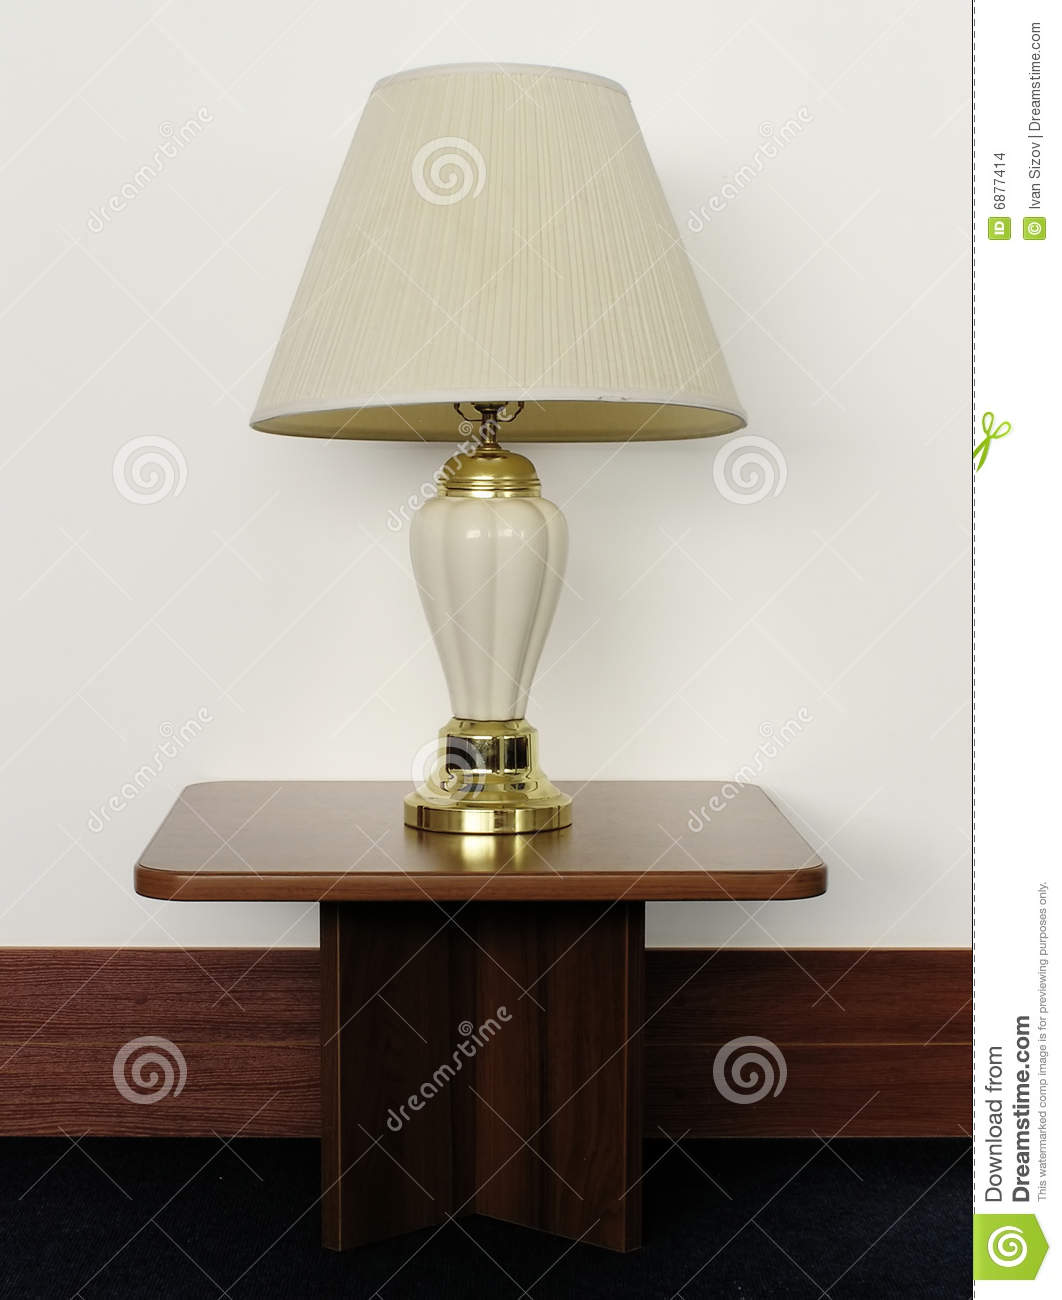 Old Desk Lamp On Table Images Image 6877414 – Lamp on Desk